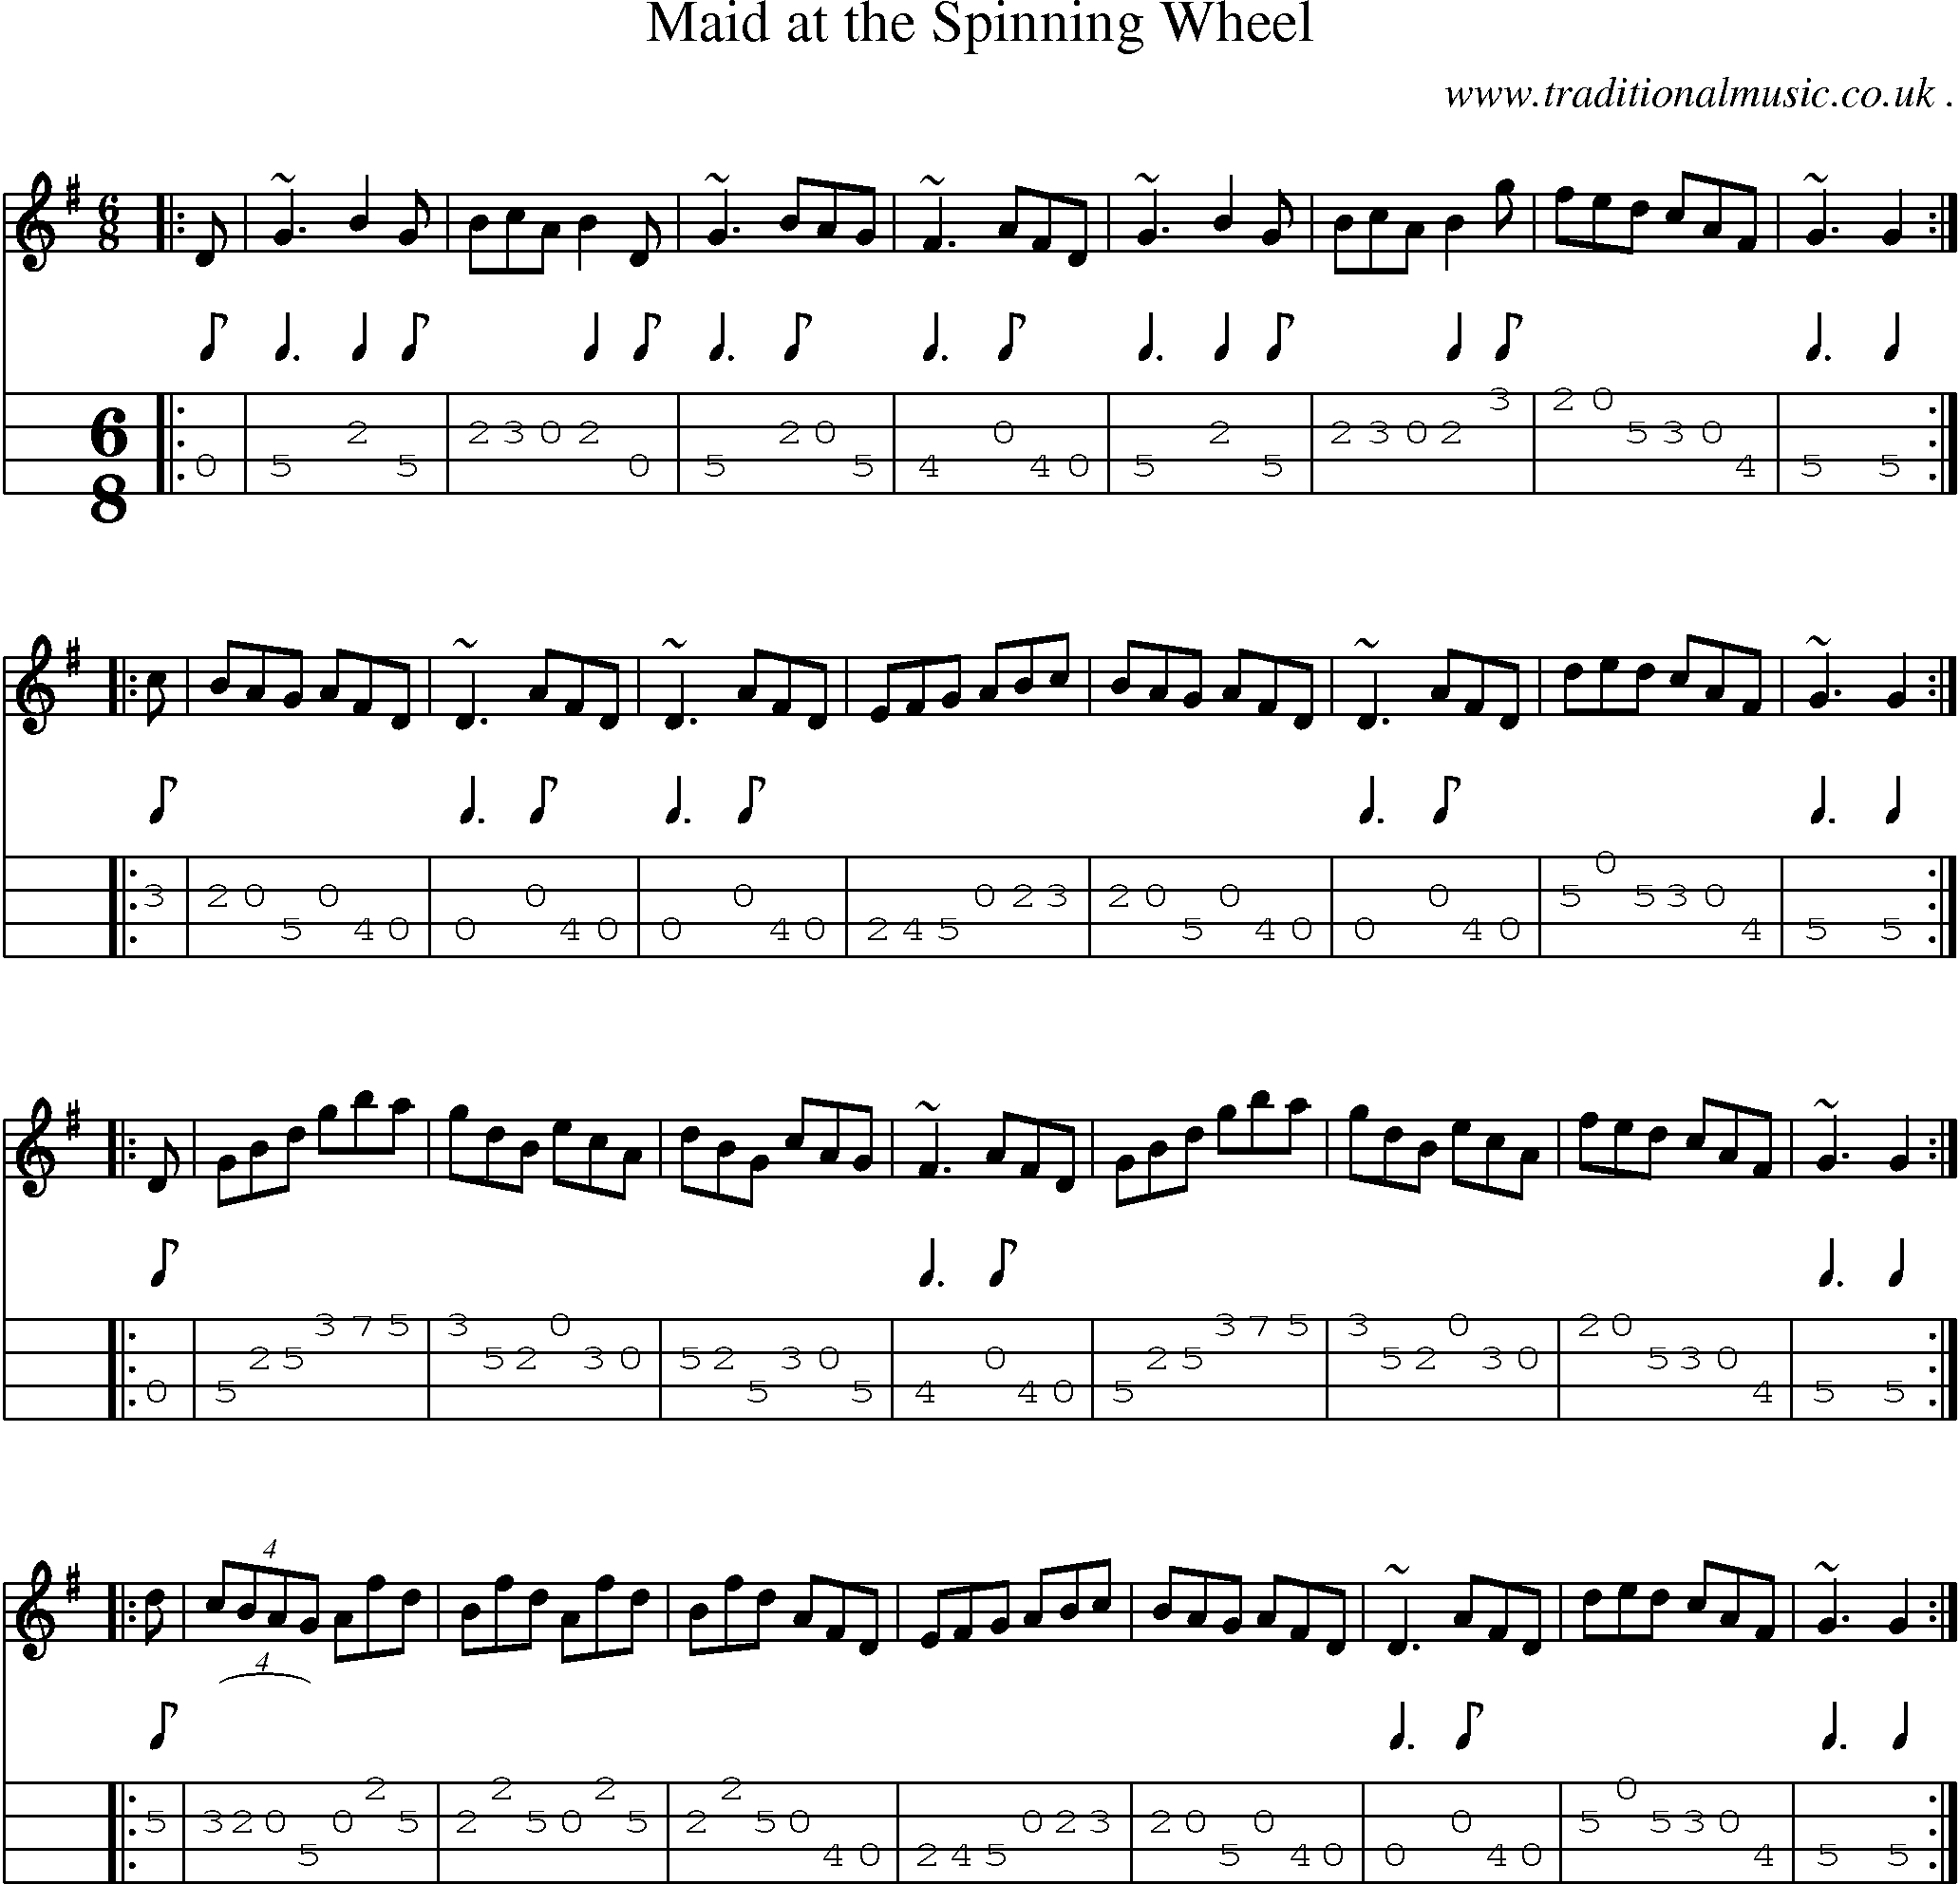 Scottish Tune, Sheetmusic, Midi, Mp3, Mandolin Tab and PDF for: Maid At The Spinning Wheel